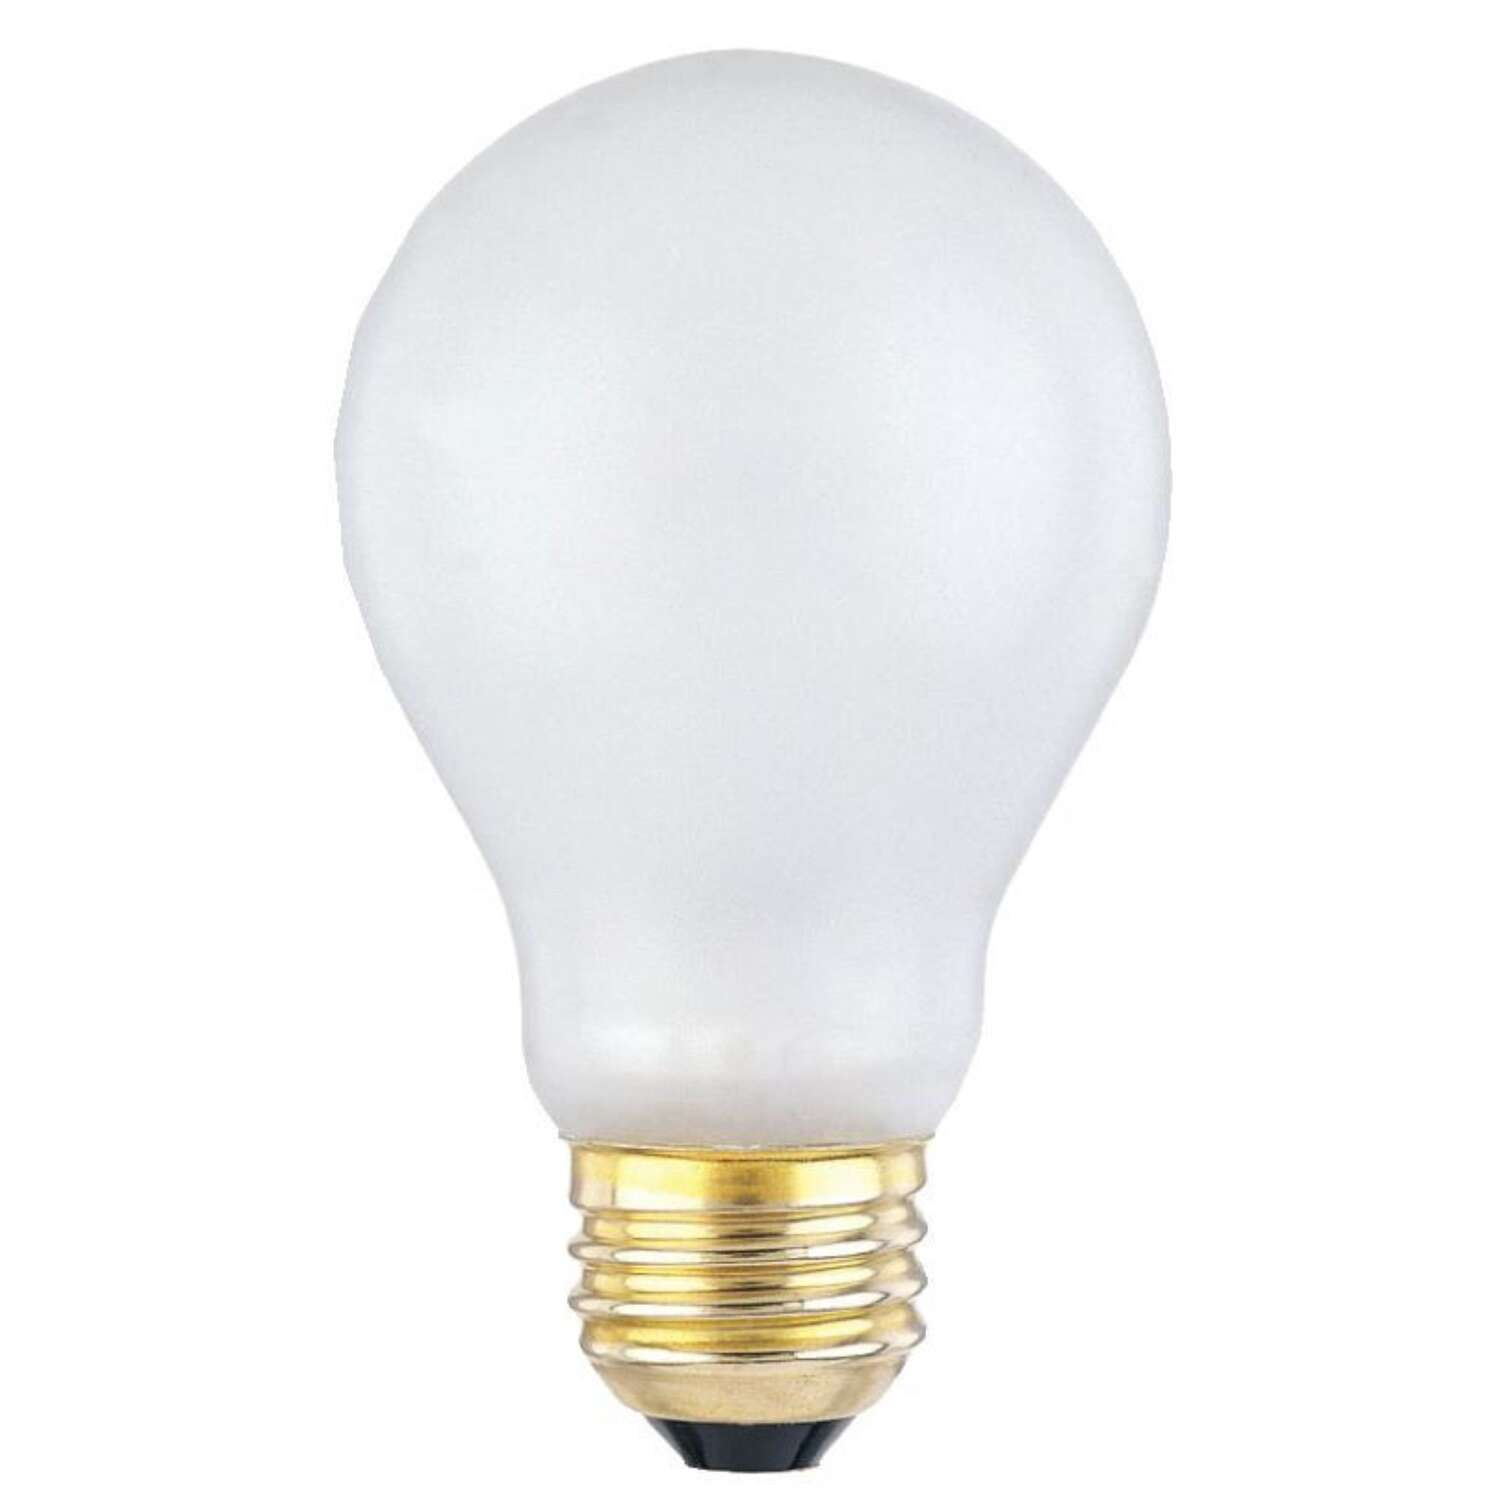 Westinghouse Toughshell 100 watt A19 Specialty Incandescent Bulb E26 (Medium) Cool White 1 pk